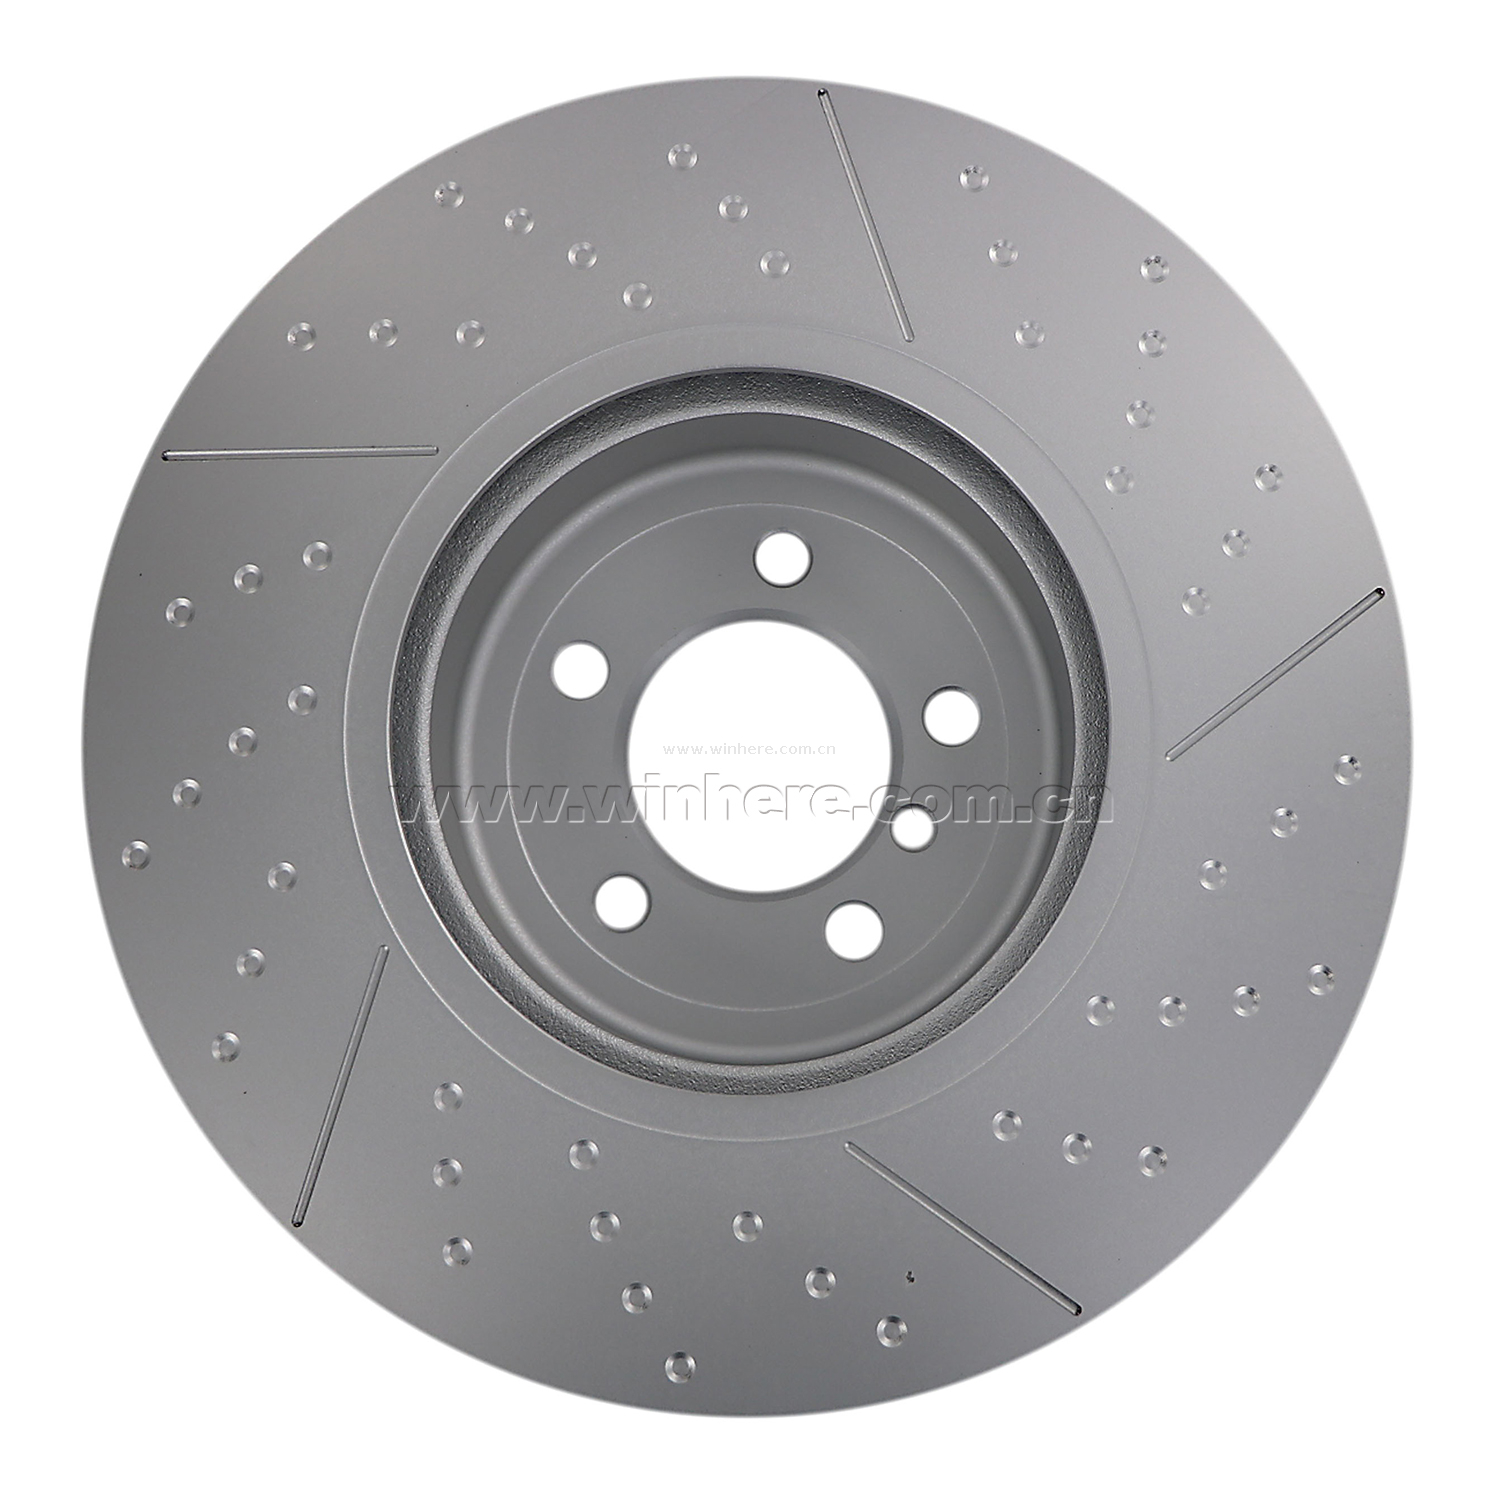 Aftermarket Front Brake Disc for BMW ECE R90